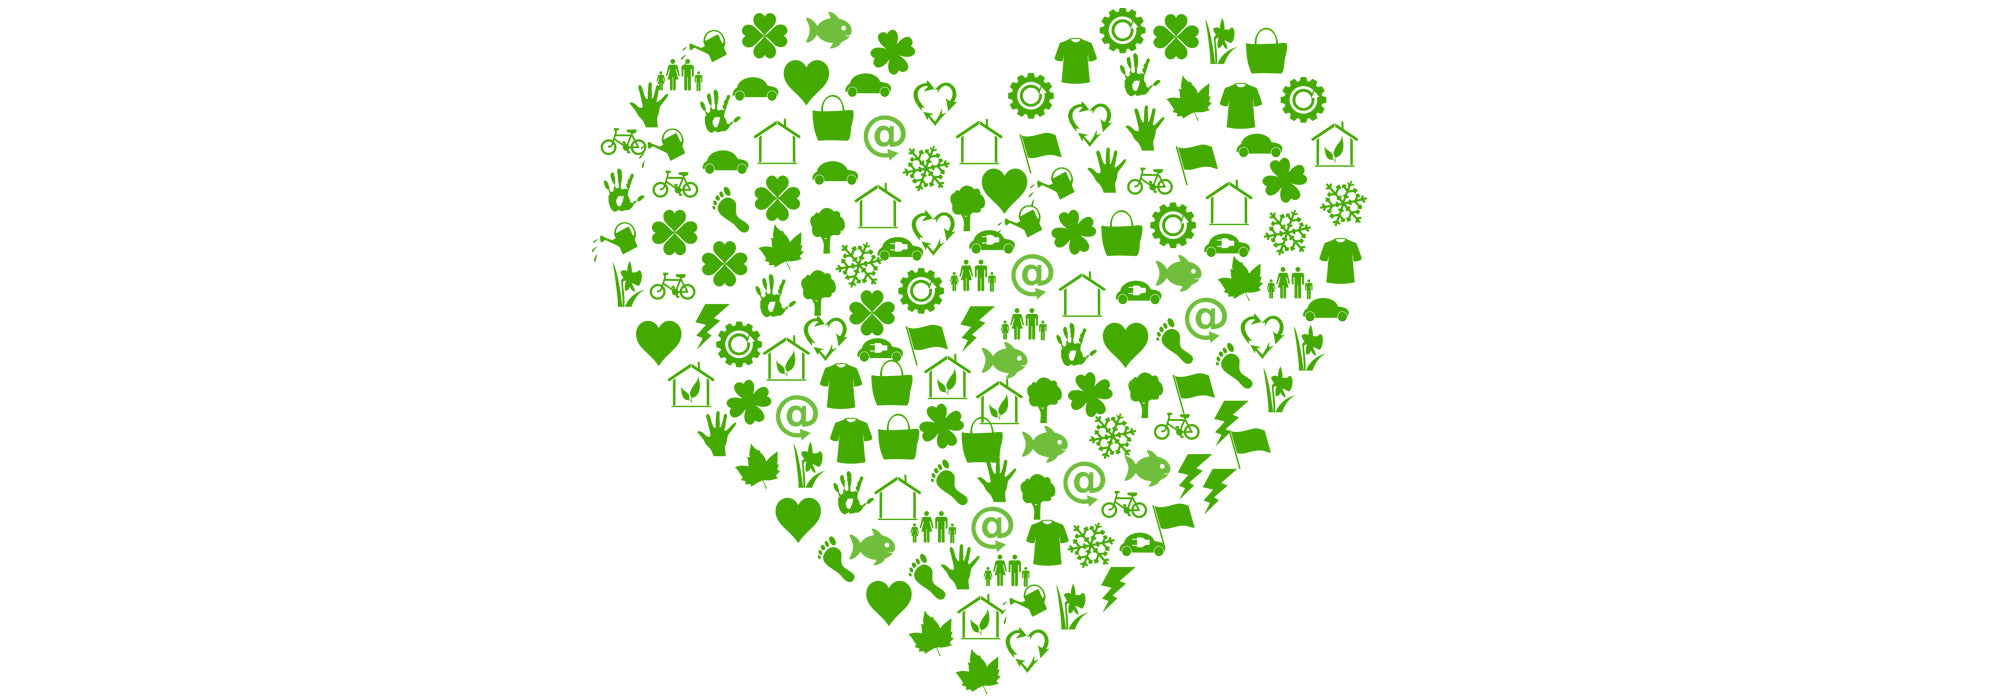 A green Valentine's Day